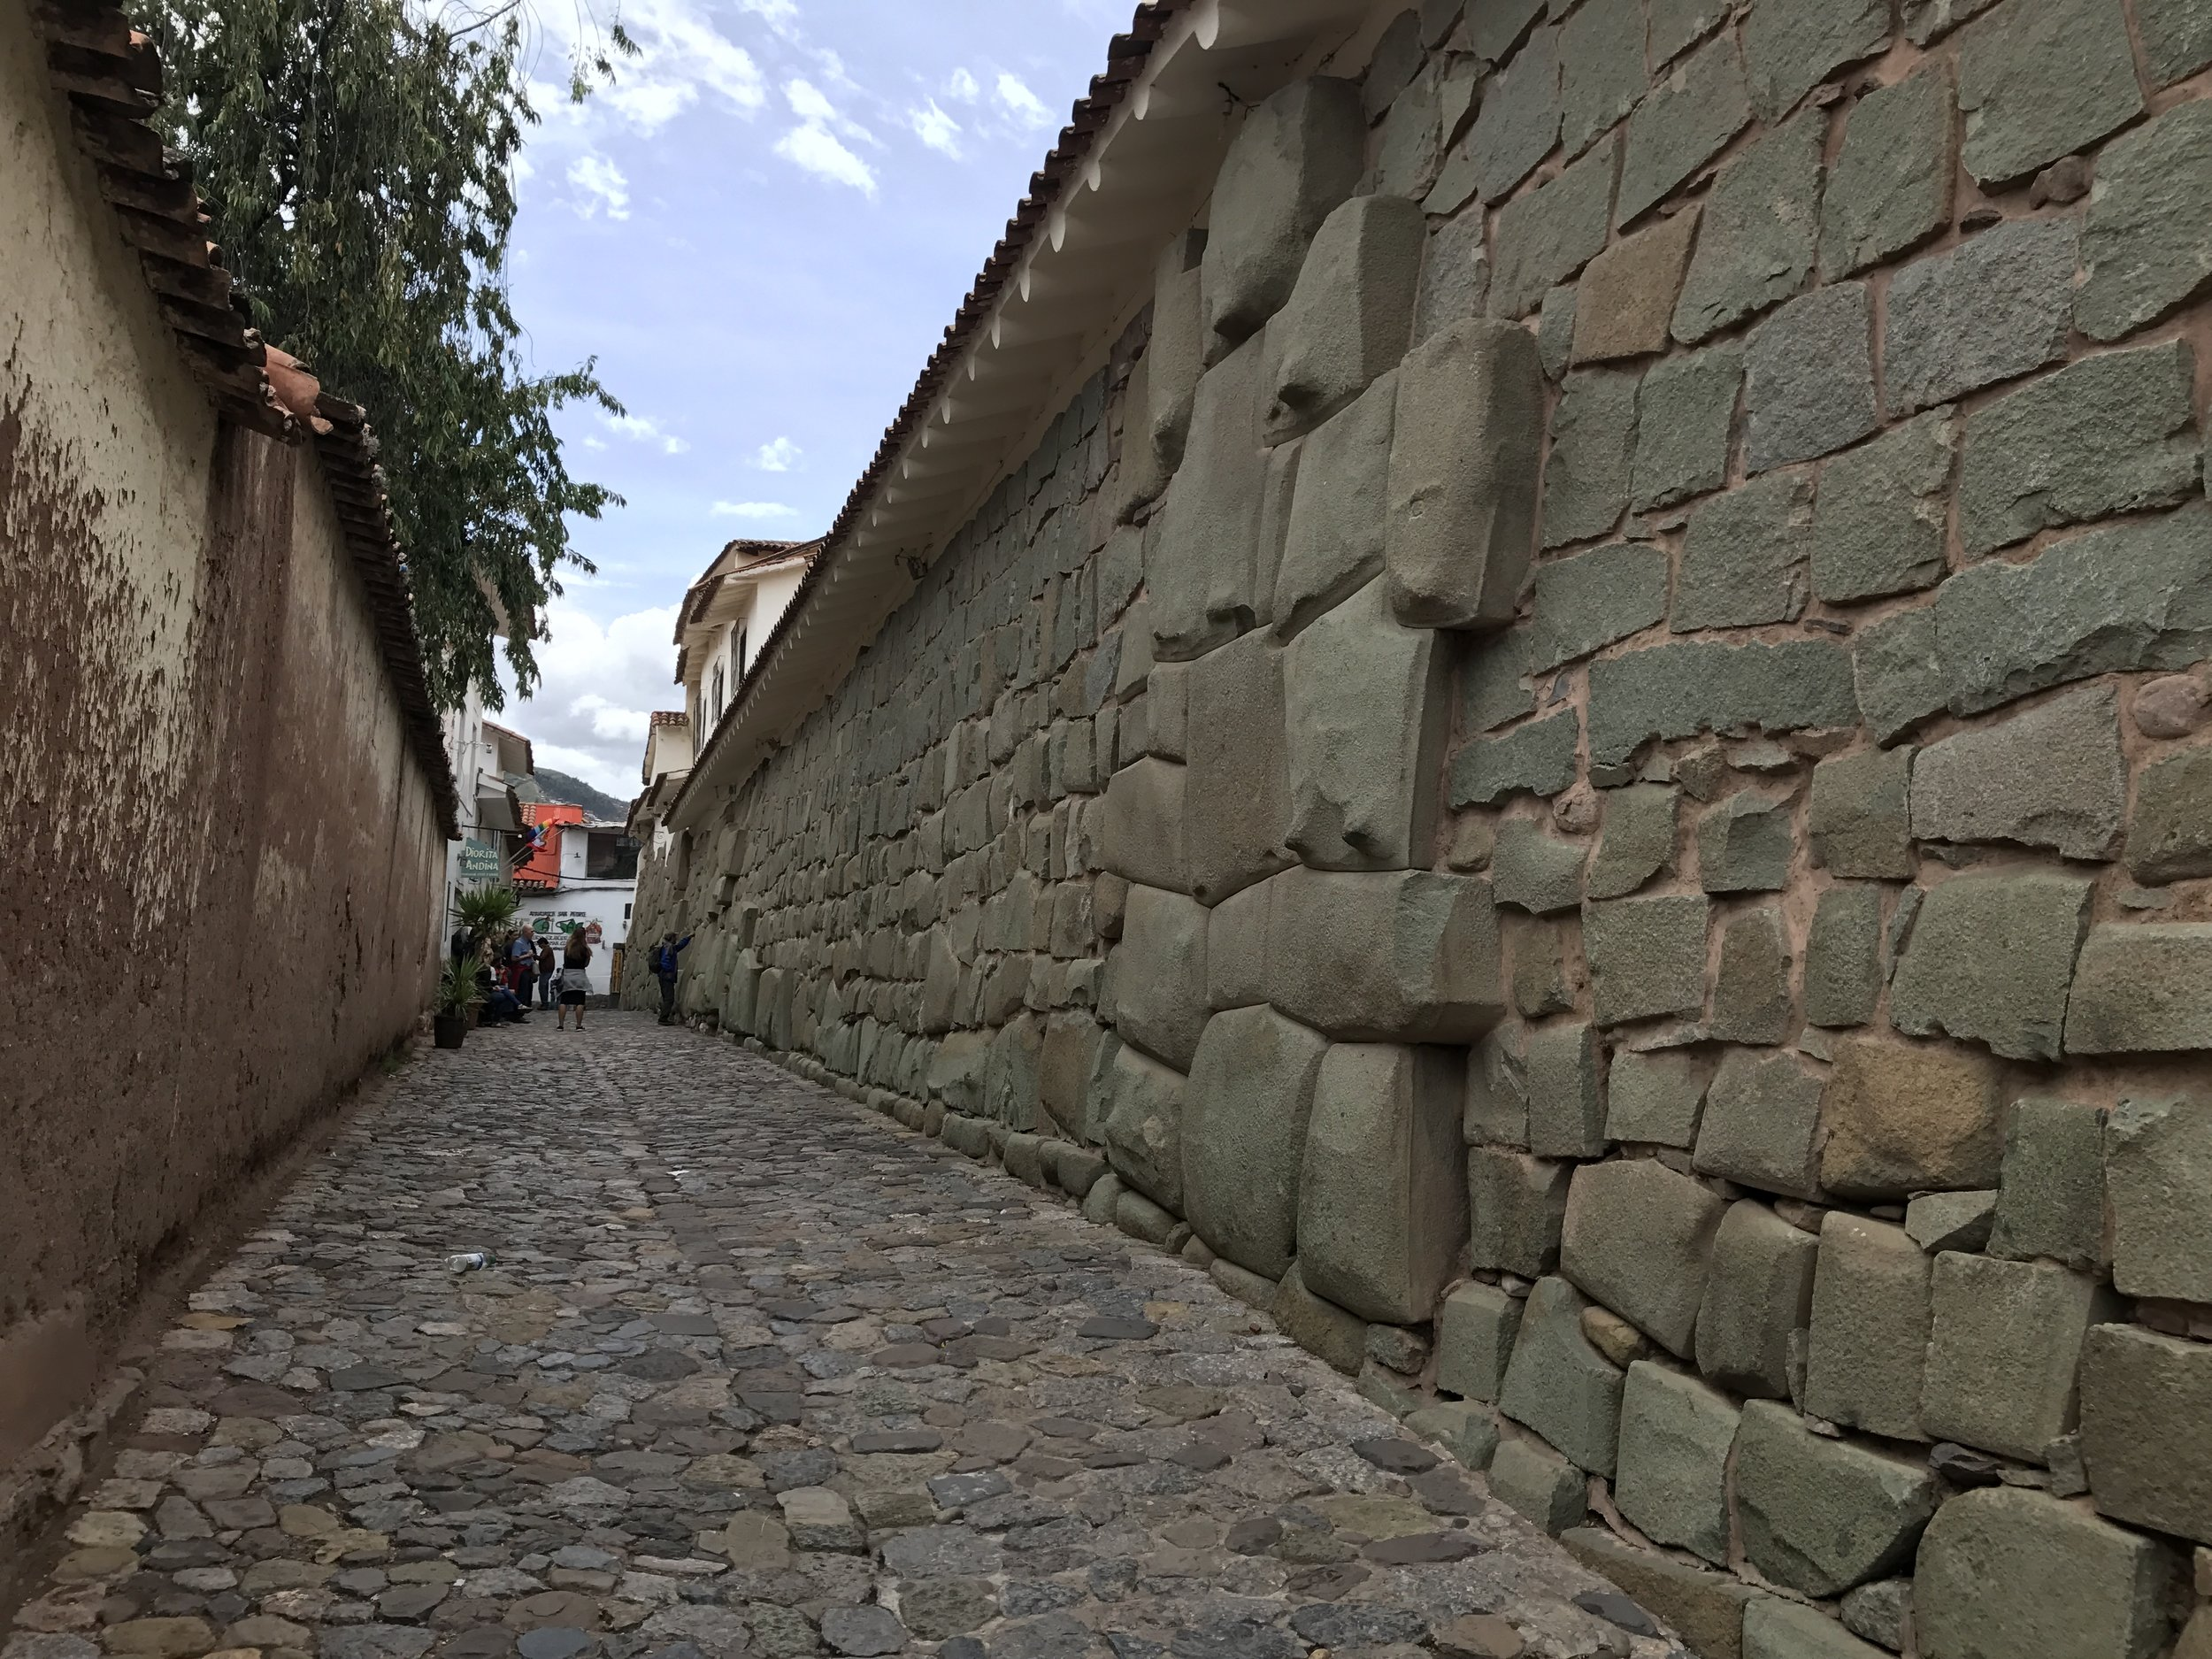 It was easy to identify the sections created by the Incans from the more recent stone work.